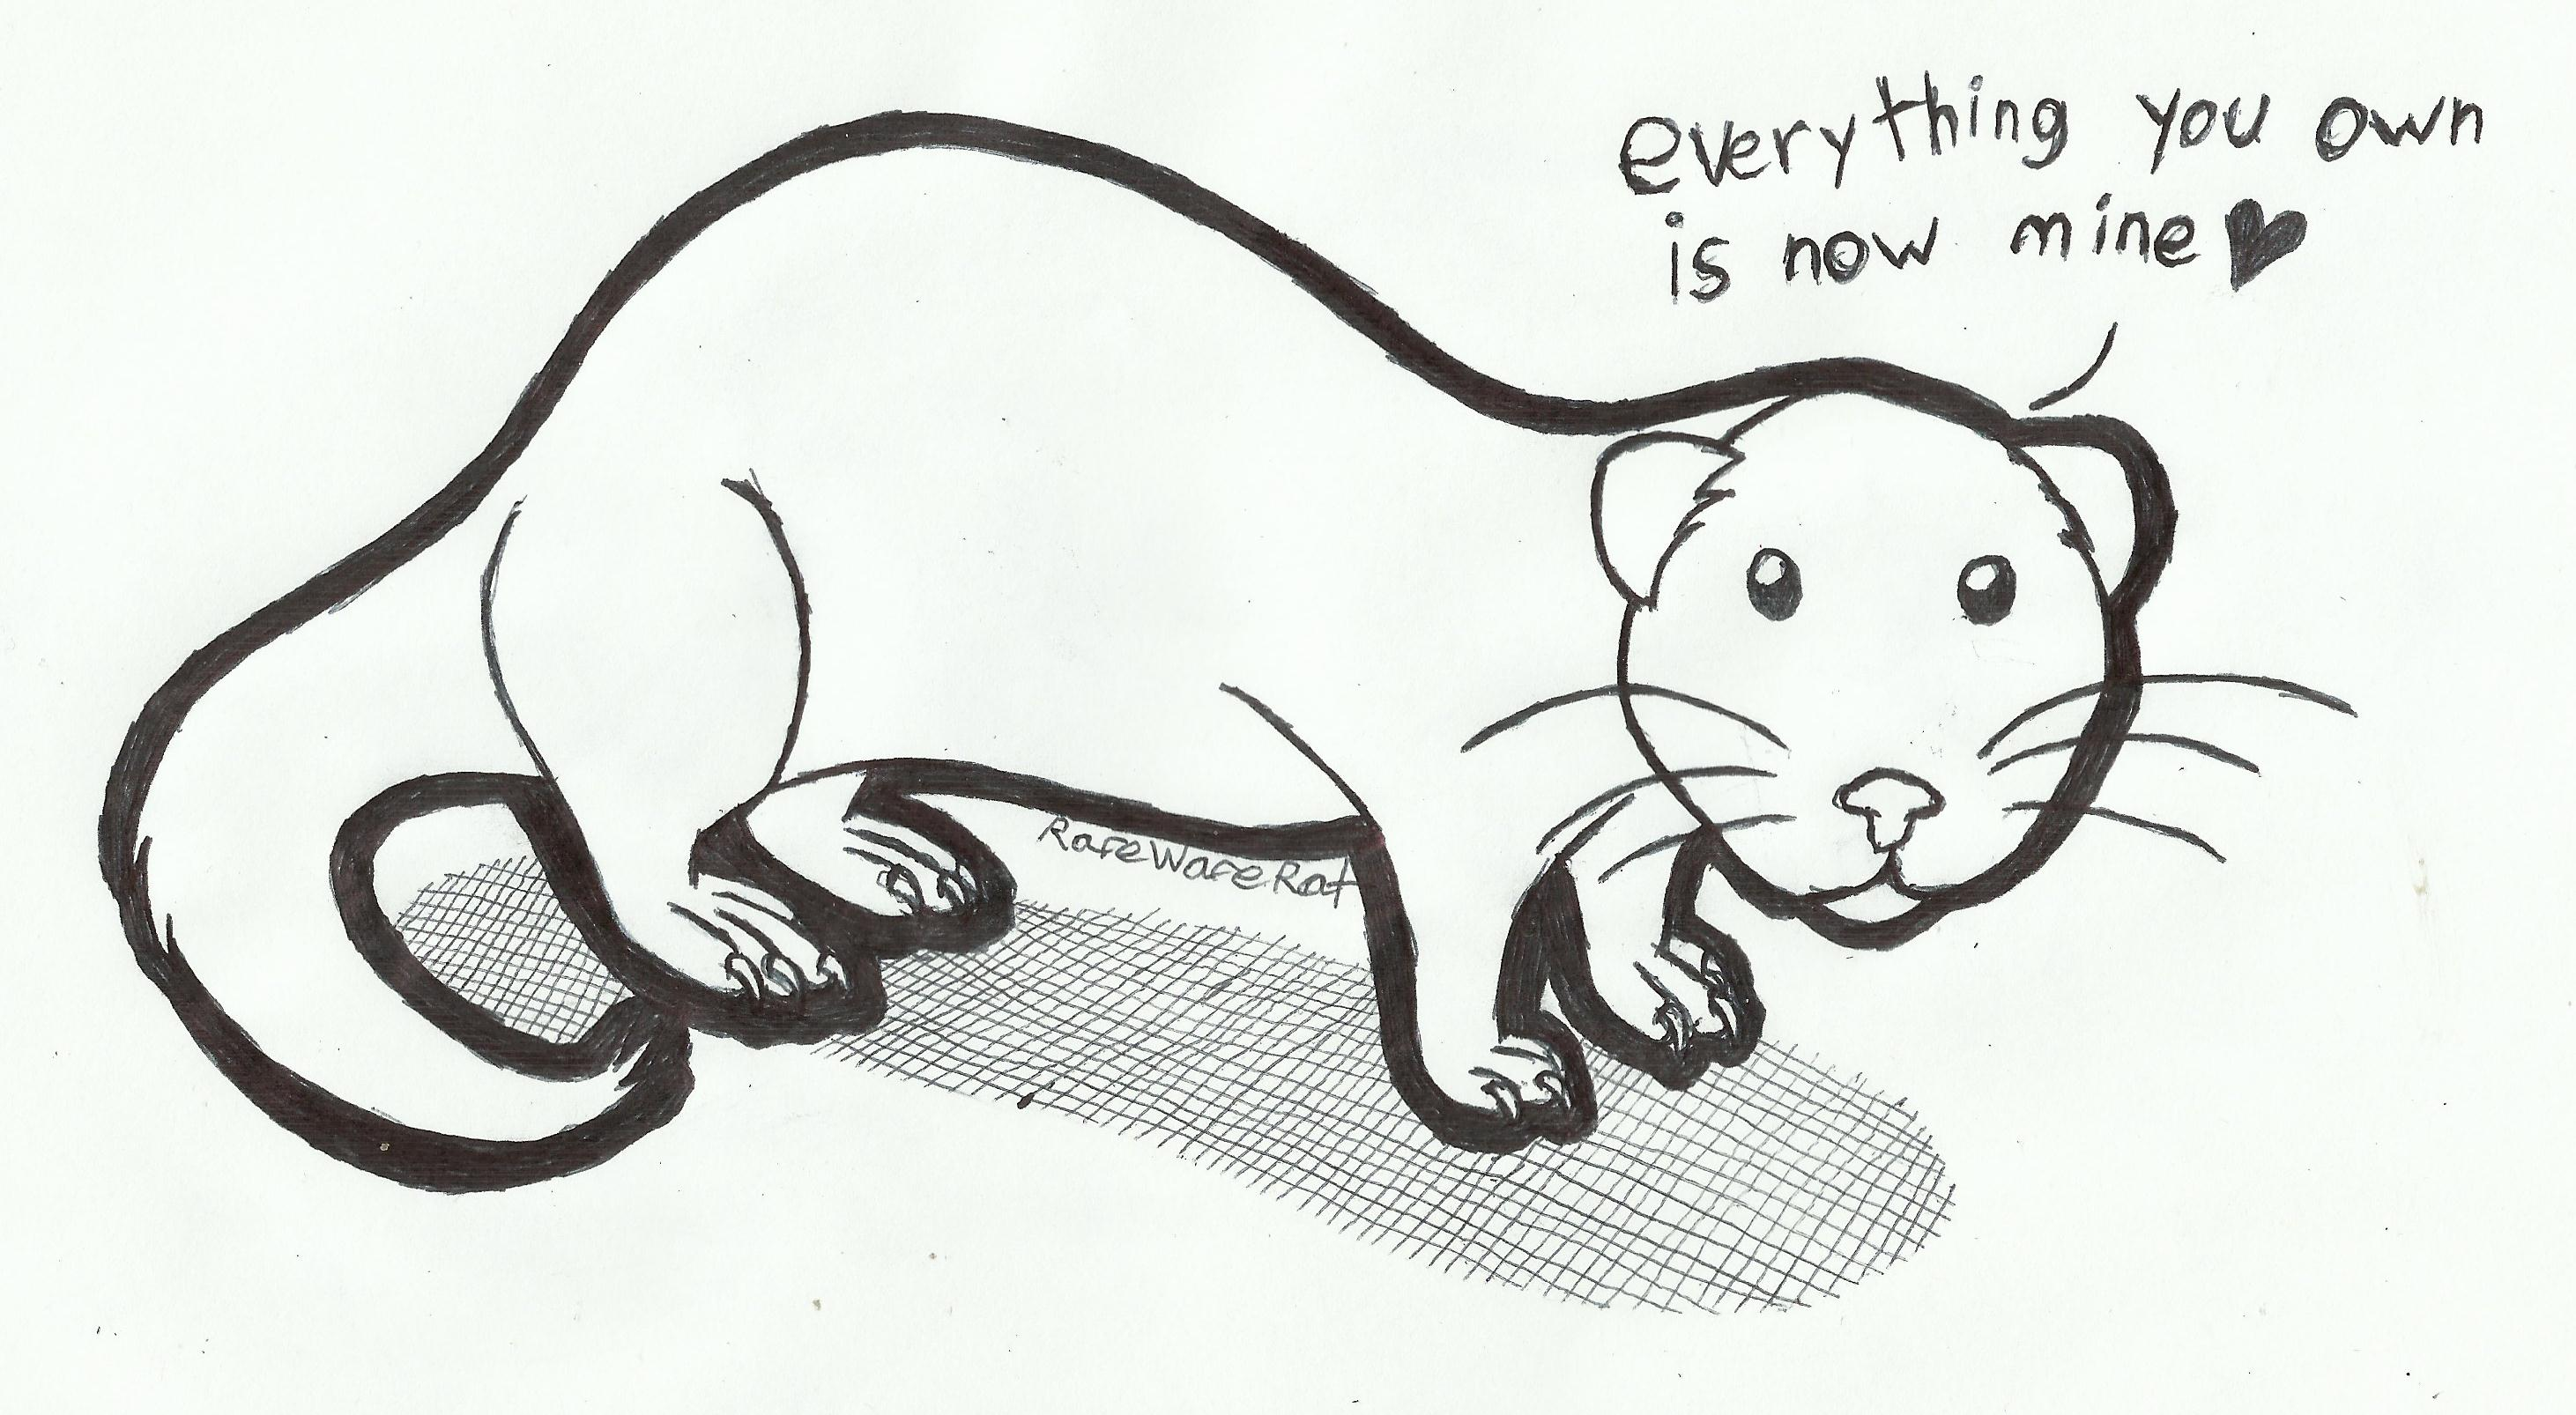 e621 :3 <3 ambiguous_gender black_and_white claws cute dialogue english_text feral ferret full-length_portrait hi_res line_art looking_at_viewer mammal marker_(artwork) mixed_media monochrome mustelid pen_(artwork) pet portrait quadruped rarewarerat round_ears side_view simple_background solo standing territorial text the_truth toe_claws traditional_media_(artwork) whiskers white_background white_claws